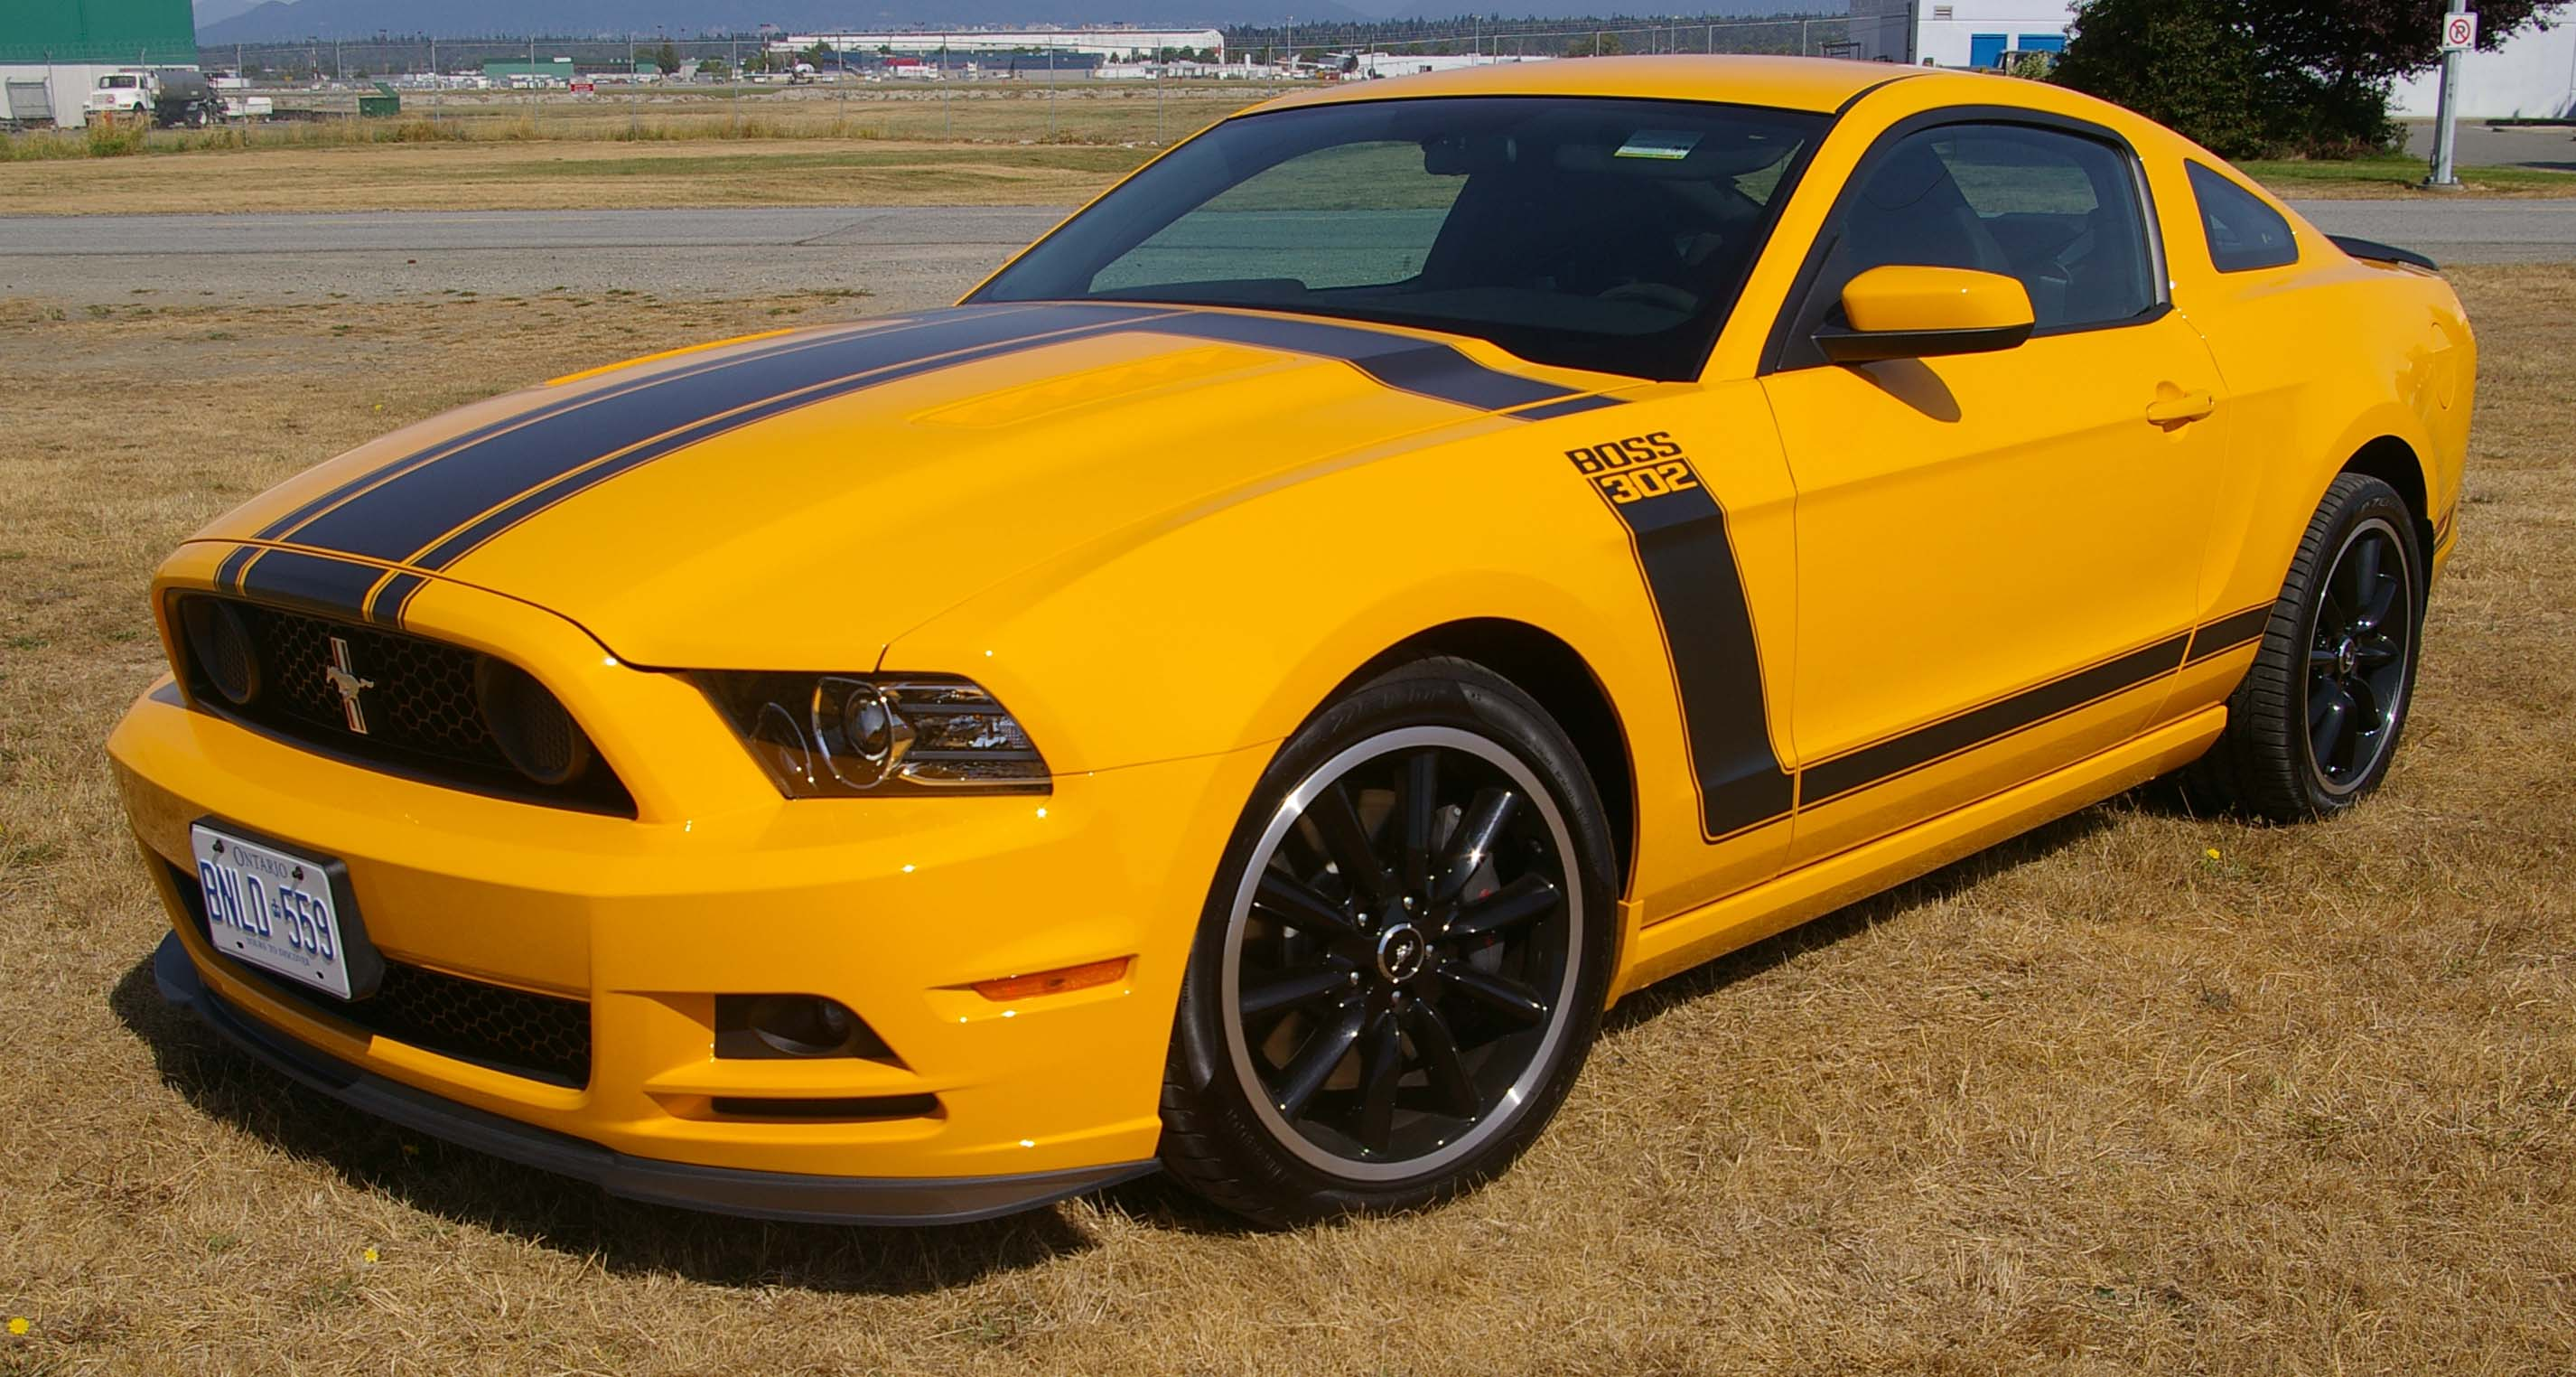 The best Mustangs ever: 2013 V6, GT and Boss 302 | Western Driver